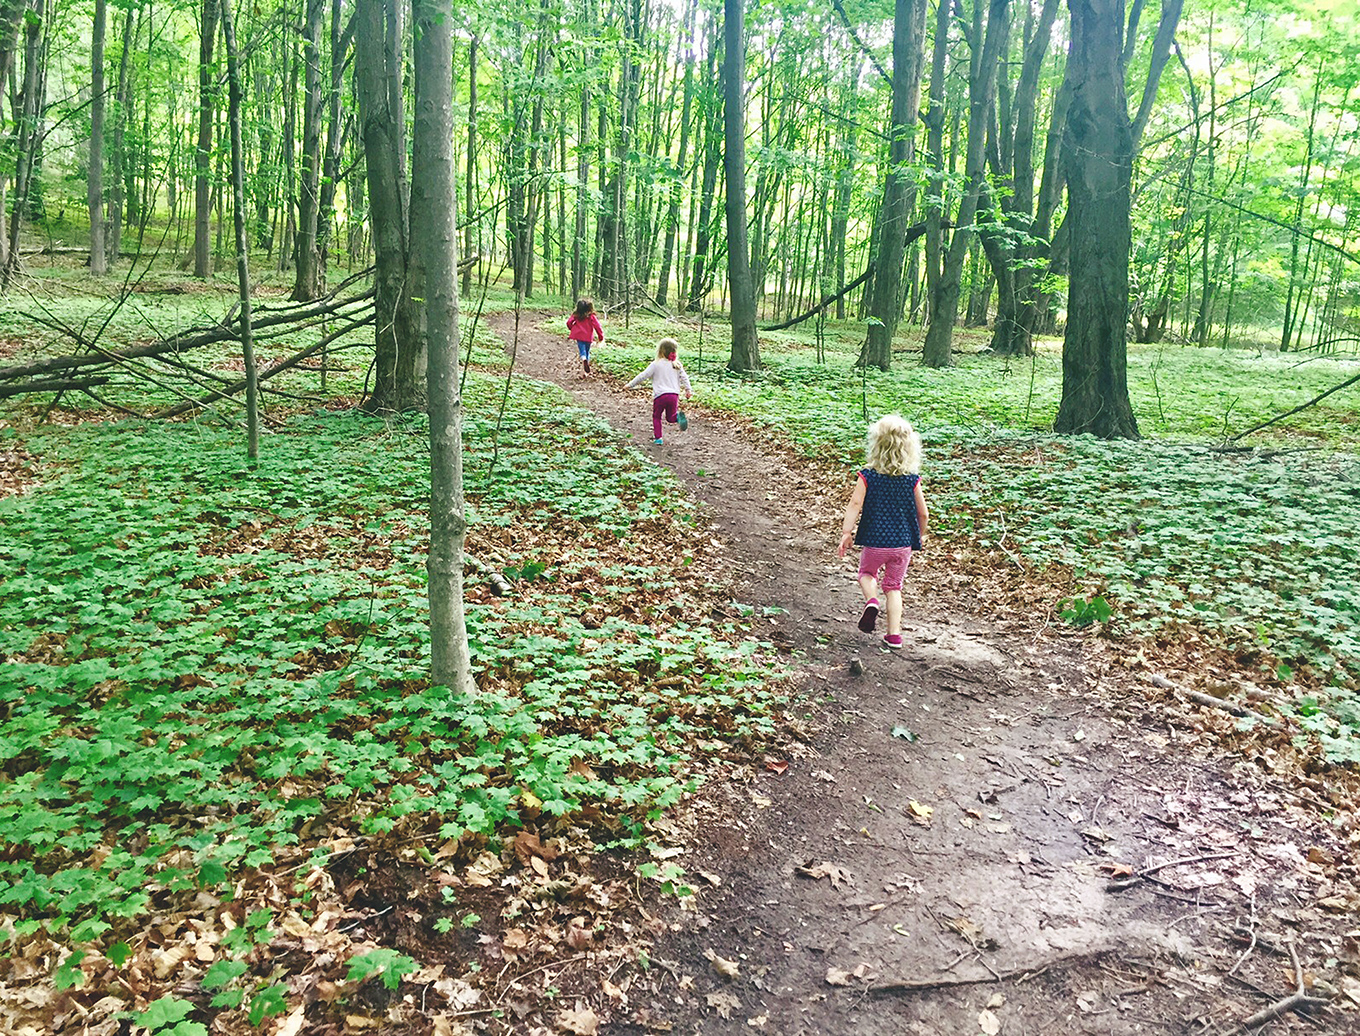 When kids spend time outside they build confidence, become more creative, and grow closer to their families. Here are 5 tips to get your kids out in nature.